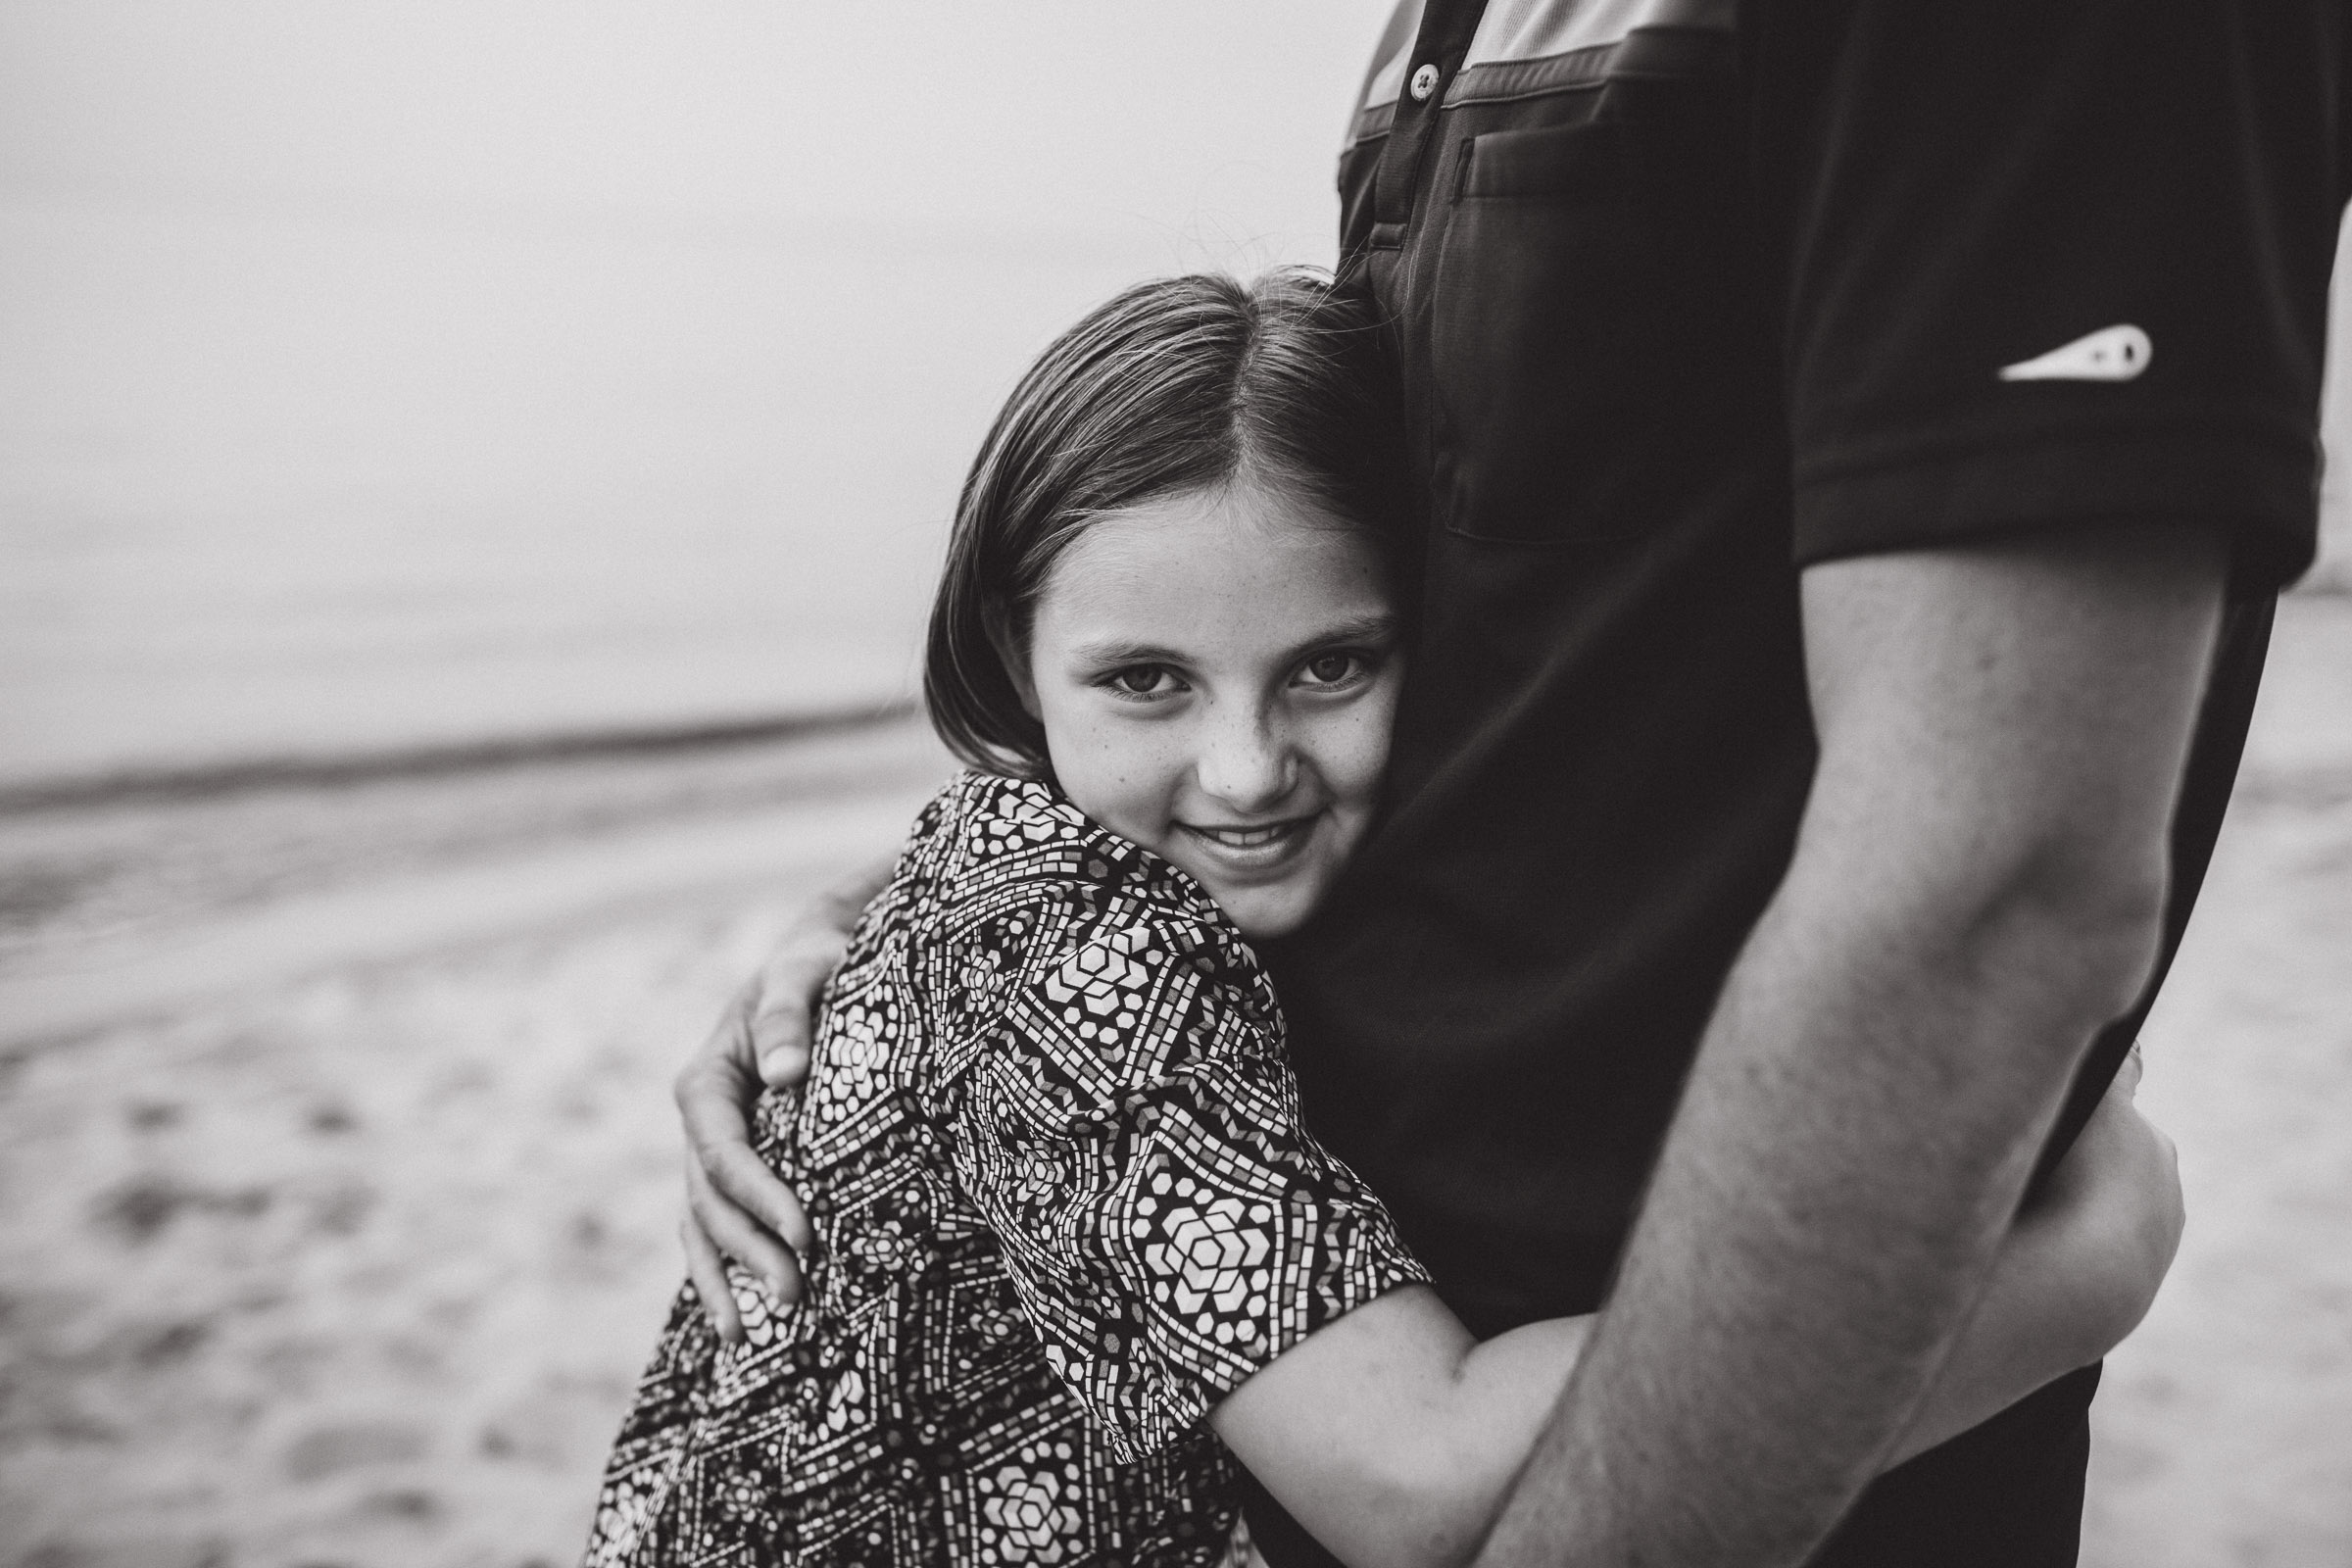 daughter pudding her father, black and white portrait